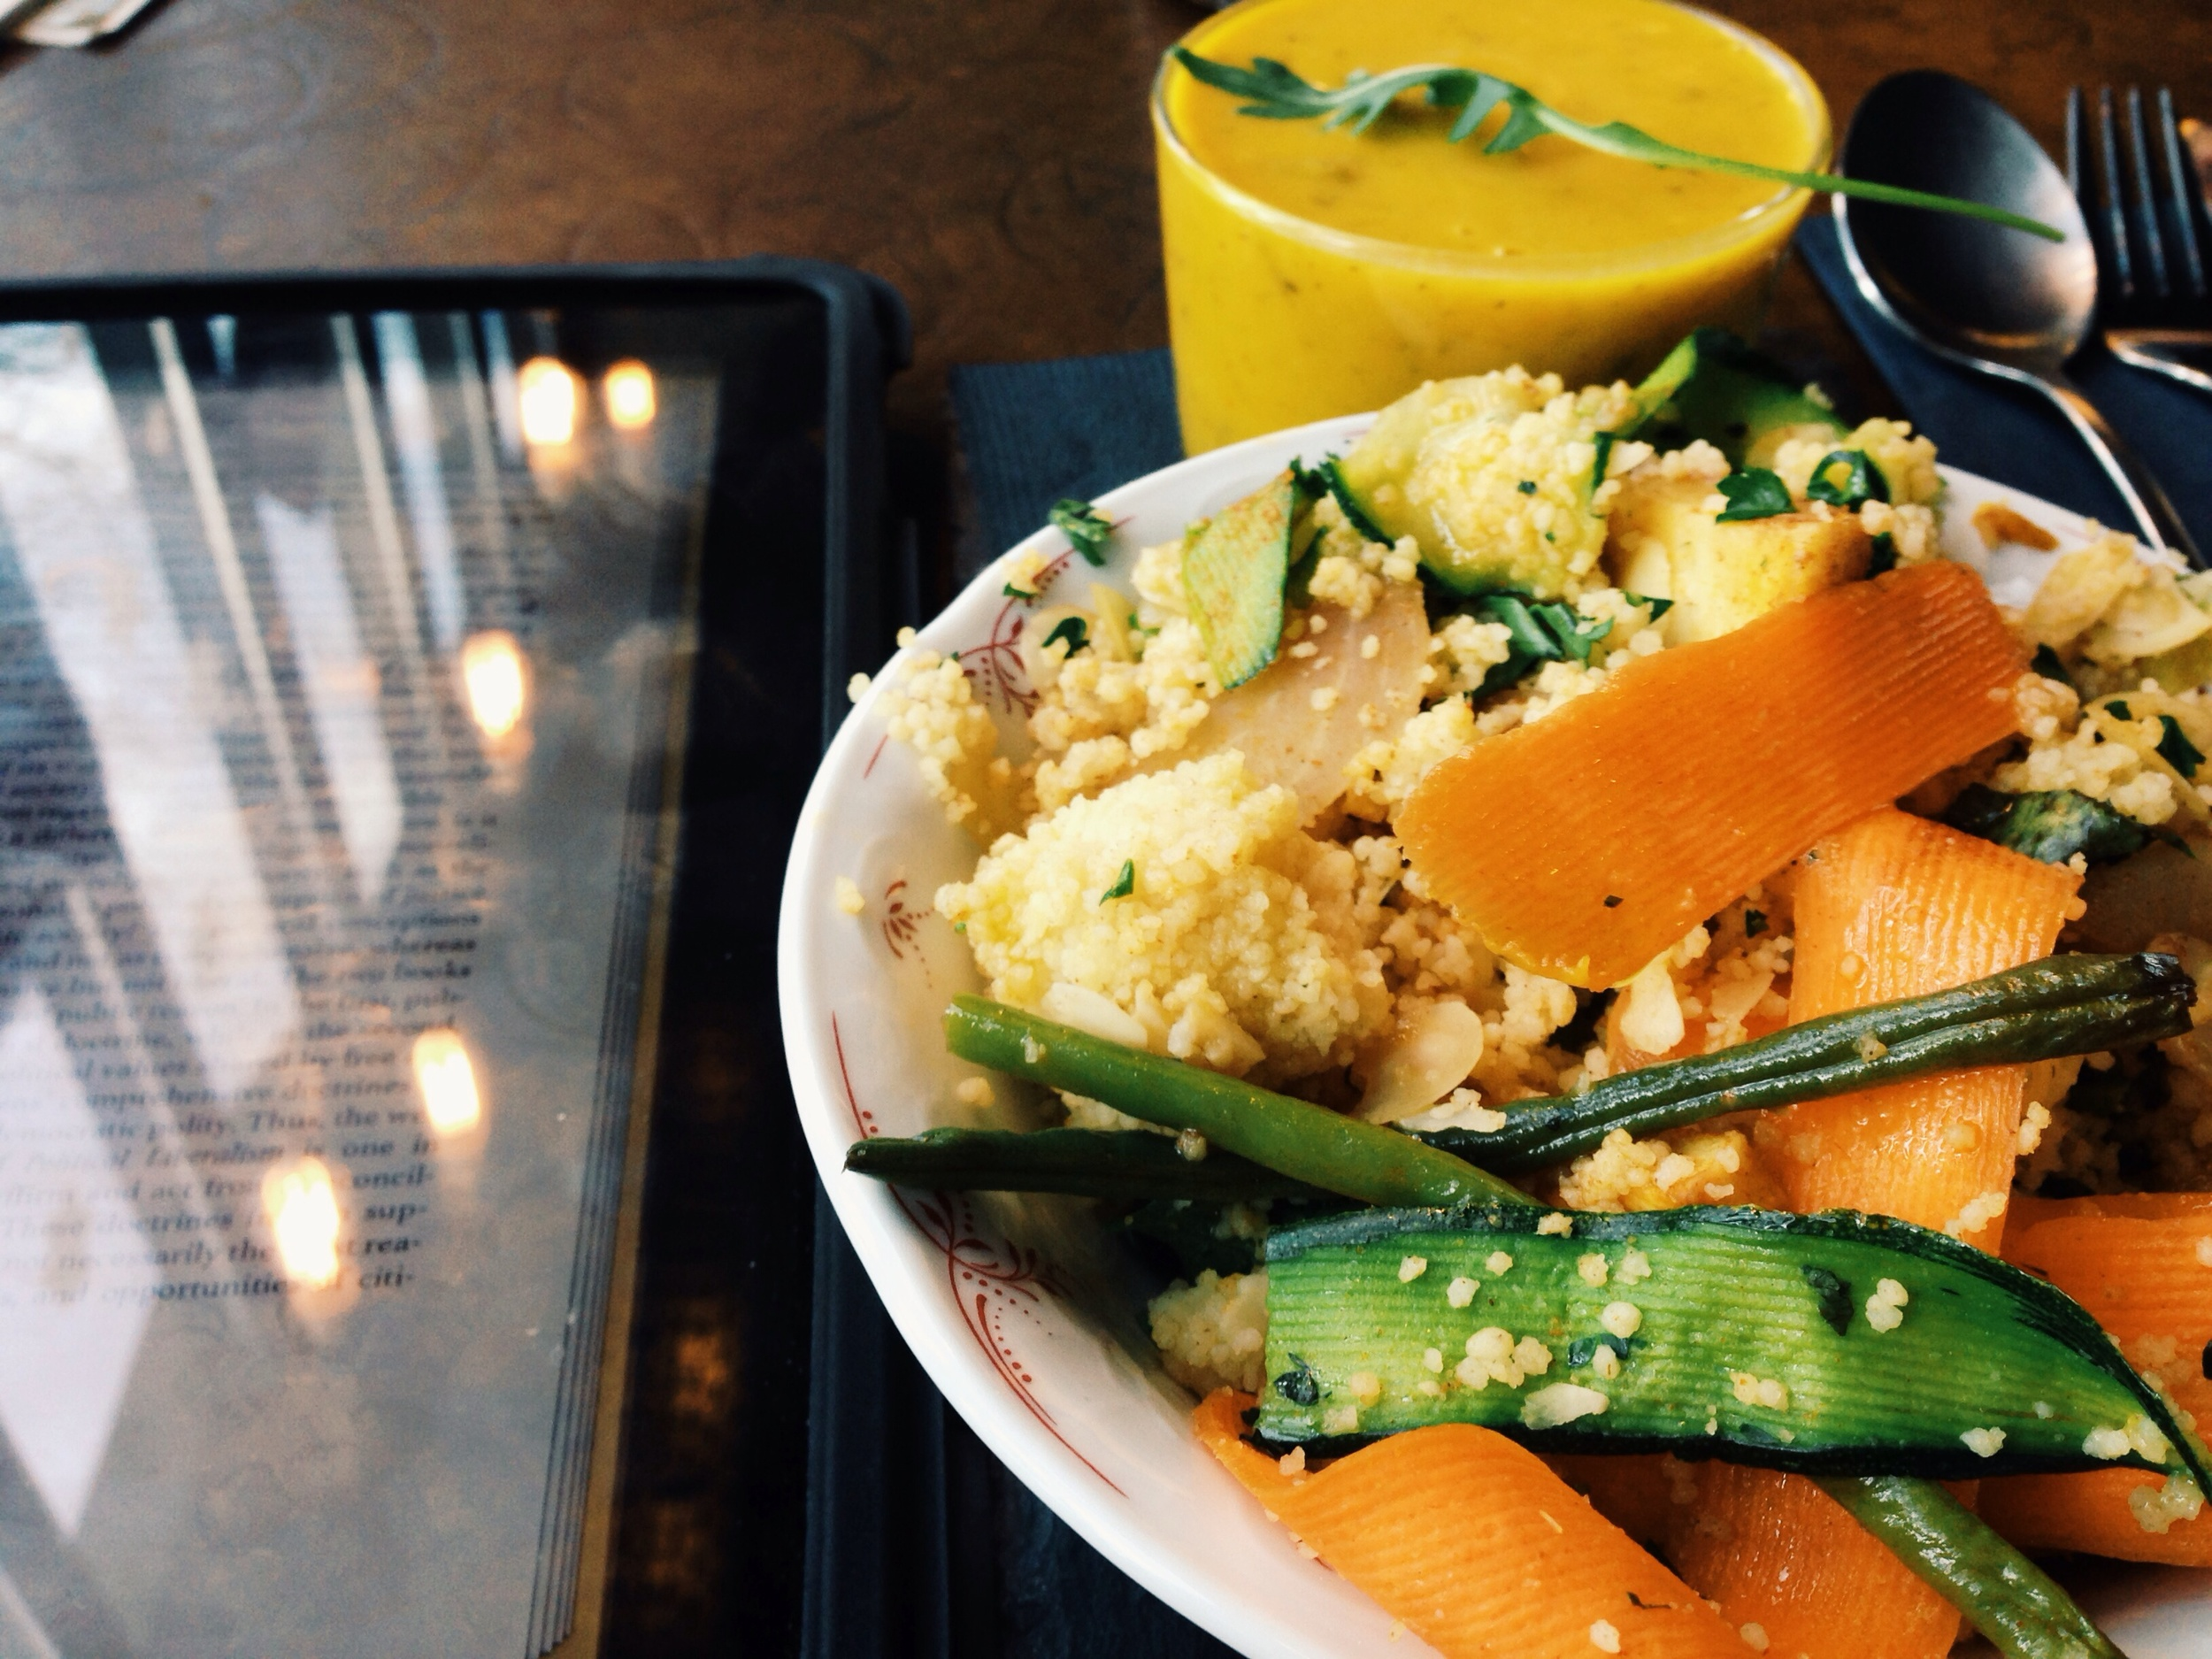 Butternut squash soup + couscous veggie salad (and again, a side of eBook)